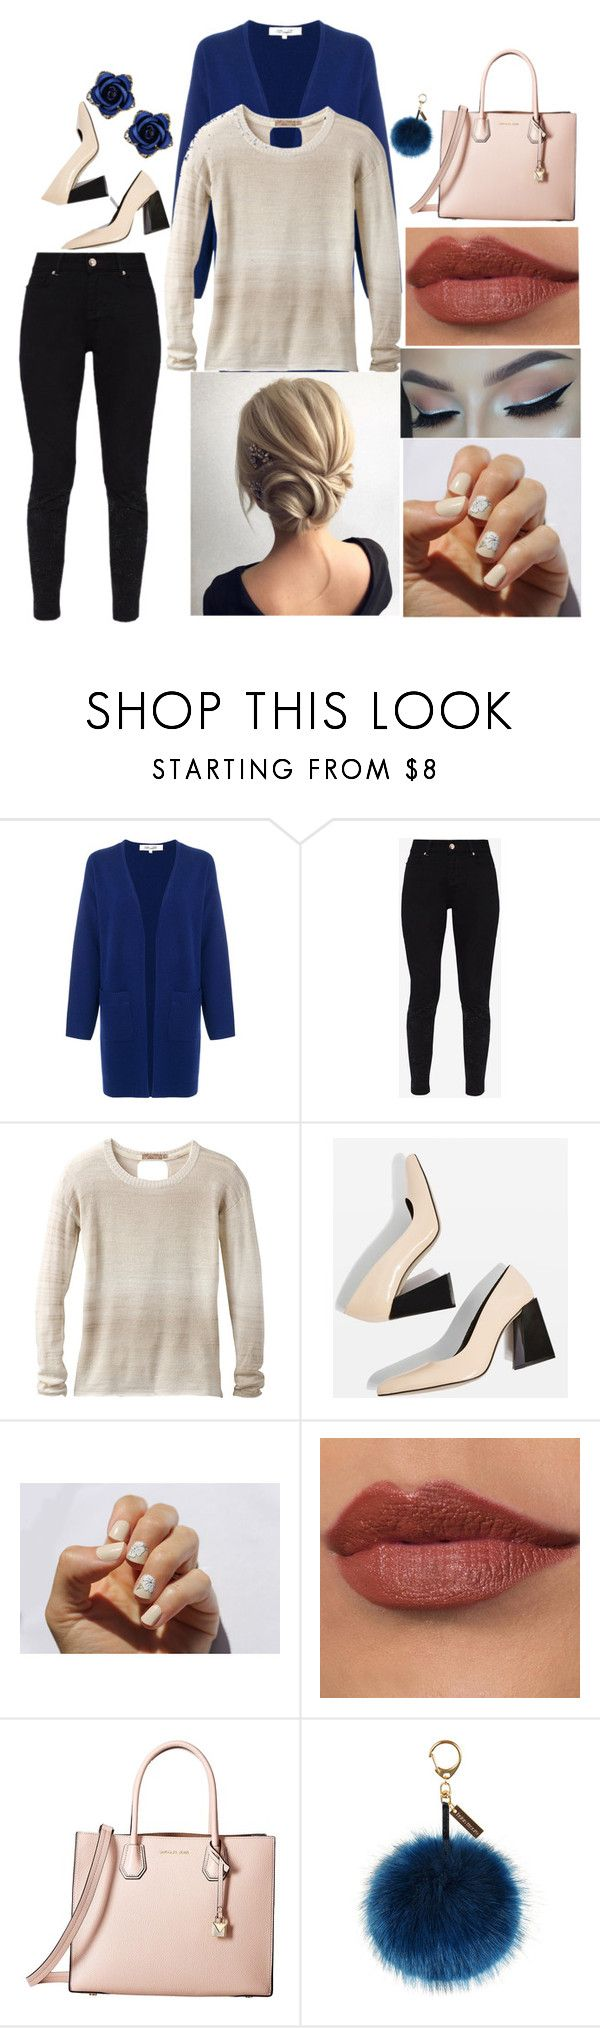 """""""Kathleen: February 27, 2018"""" by disneyfreaks39 ❤ liked on Polyvore featuring Diane Von Furstenberg, Ted Baker, prAna, Topshop, SoGloss, MICHAEL Michael Kors and Helen Moore"""